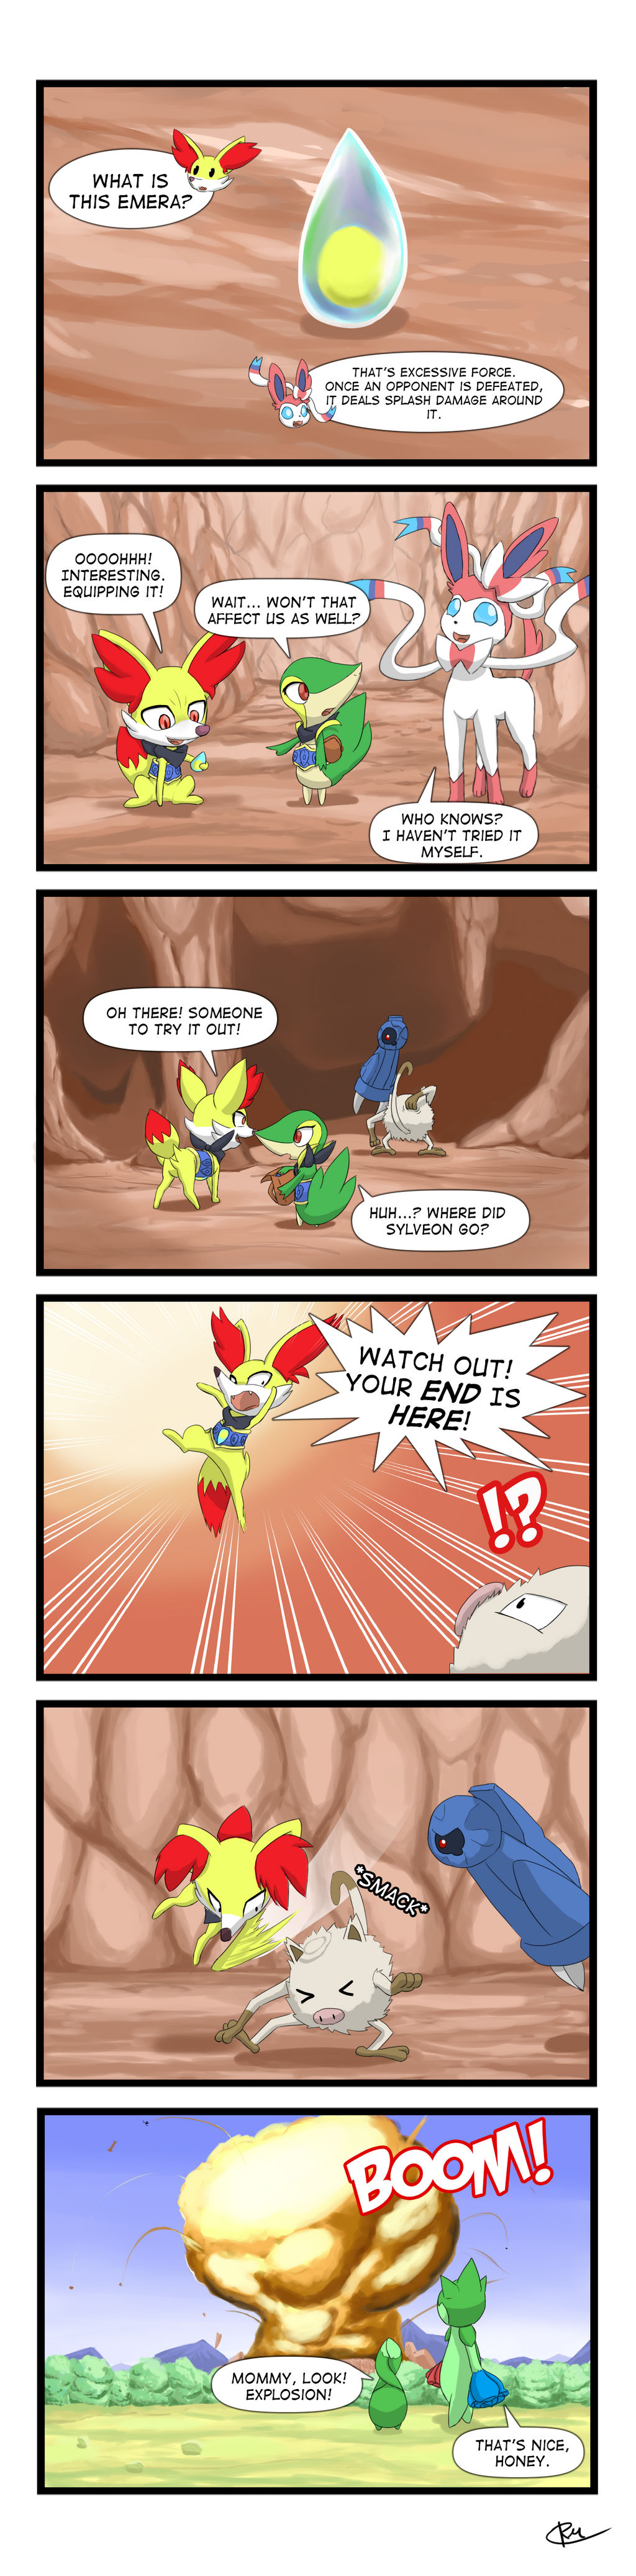 PSMD - Excessive Force by Reikomuffin